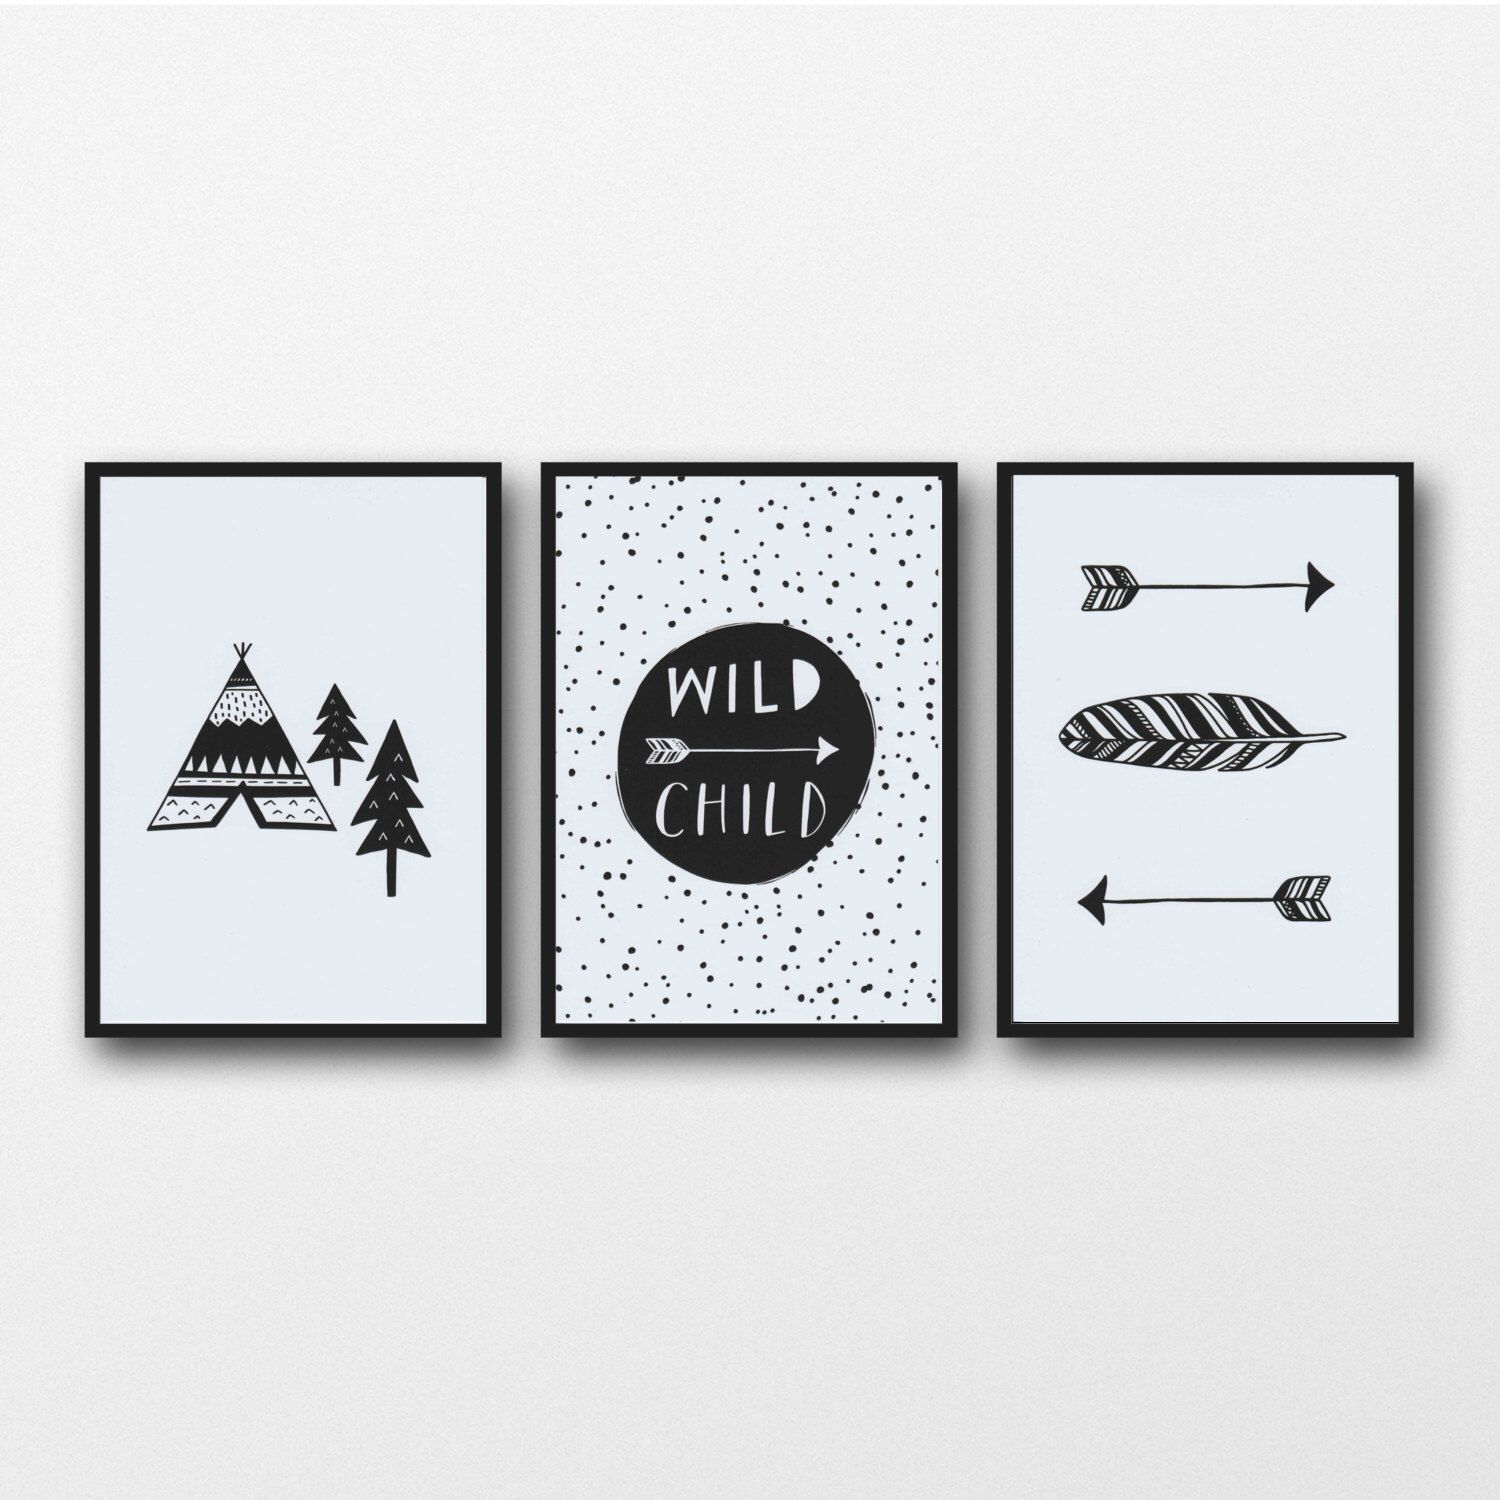 Monochrome print set of 3 prints monochrome nursery black and white print wild child nursery wall art boys room decor boy nursery art by violetandalfie on